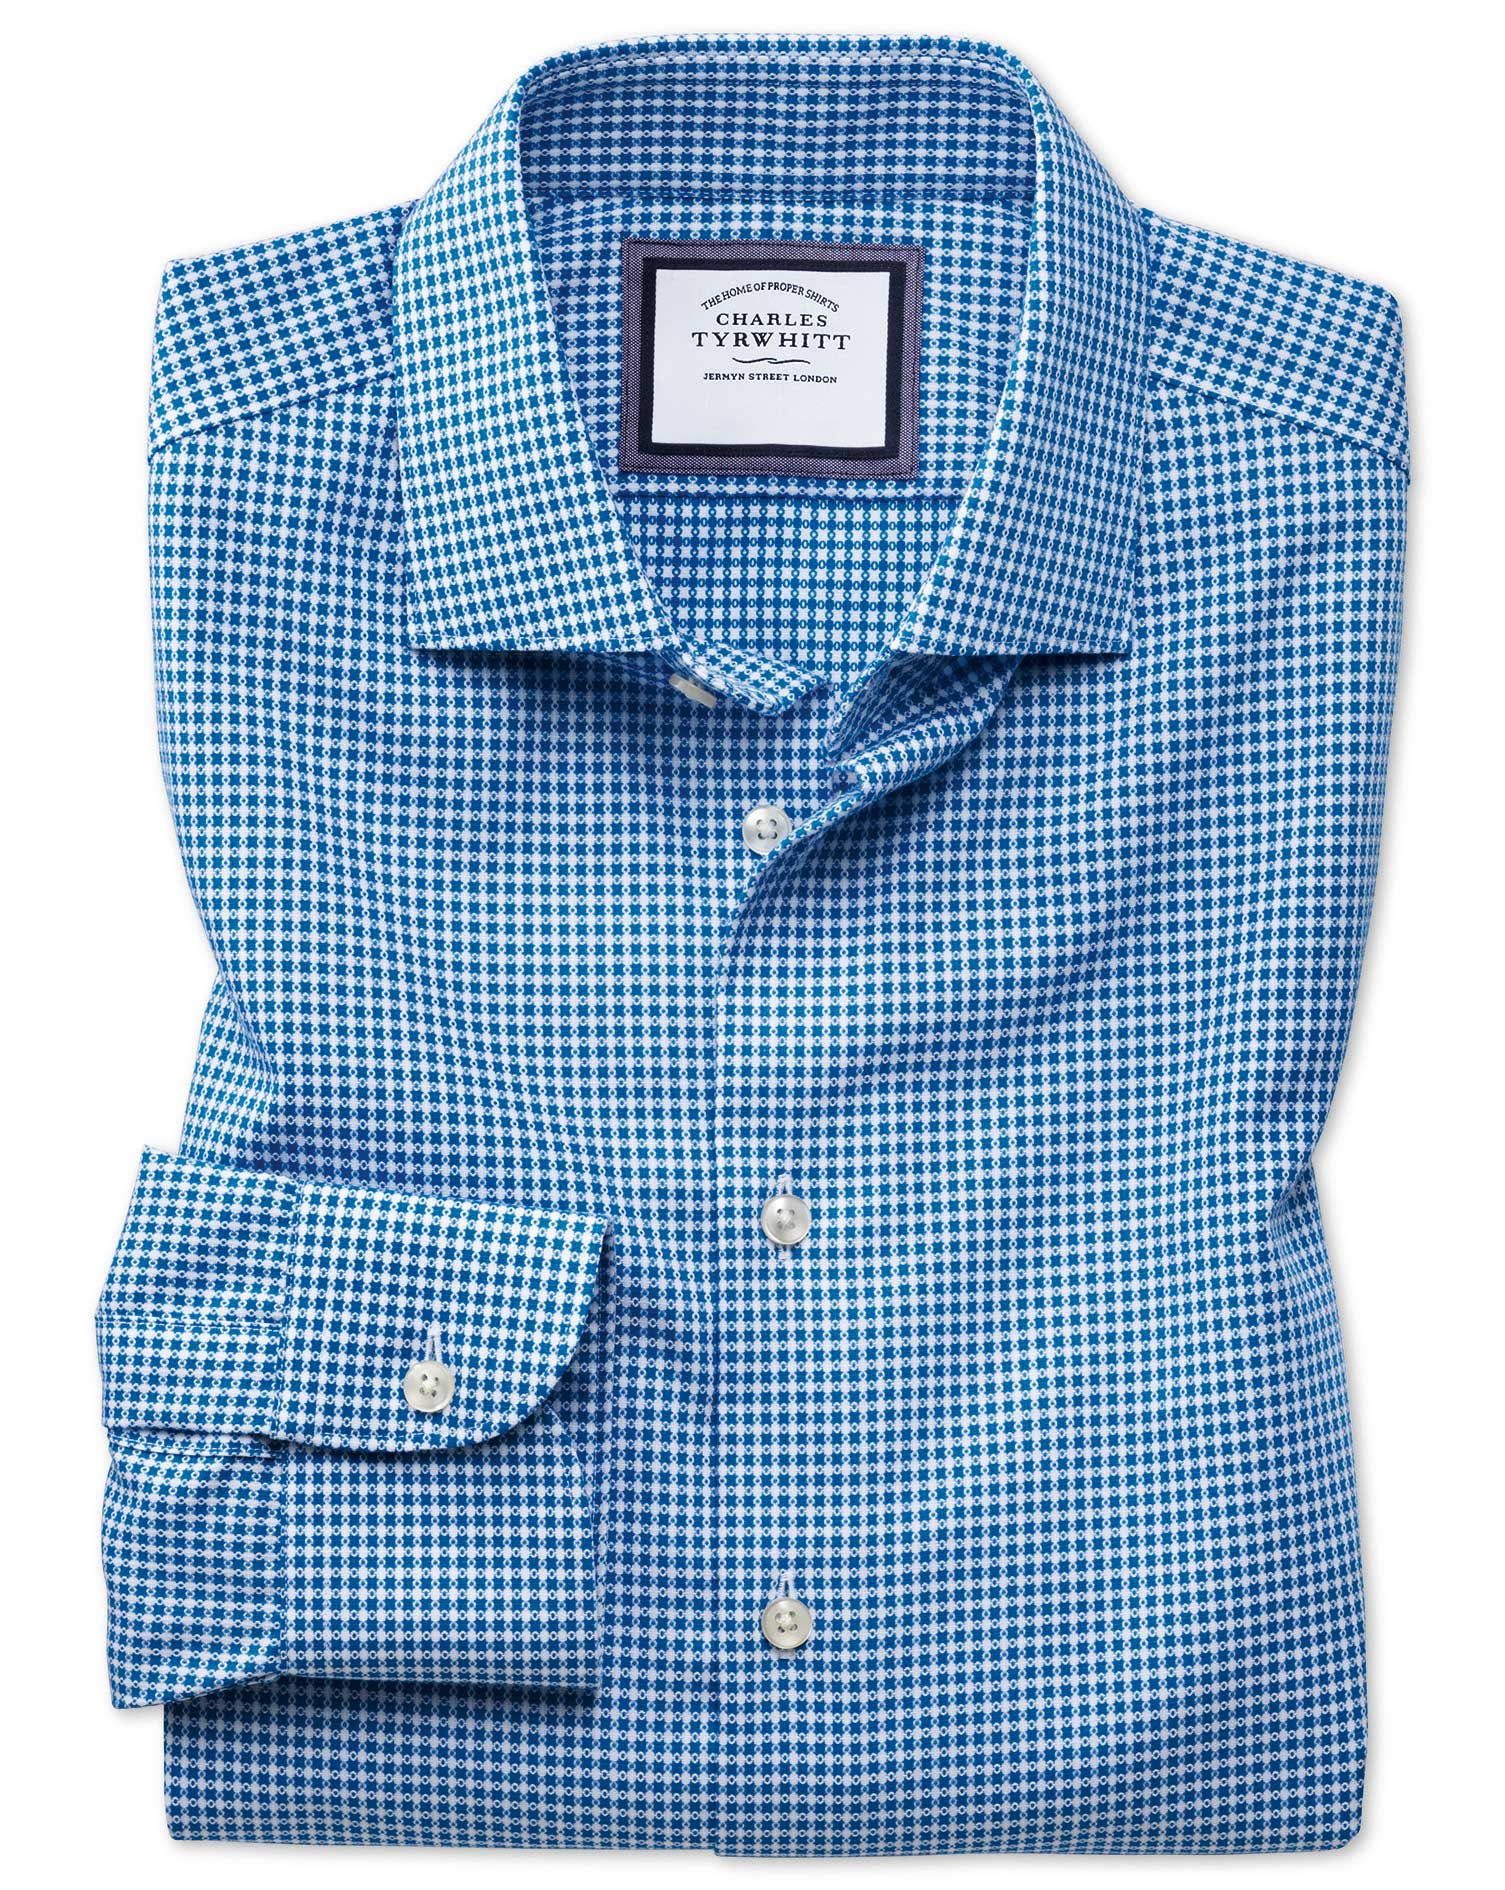 Extra Slim Fit Semi-Cutaway Business Casual Non-Iron Modern Textures Blue and White Spot Cotton Form